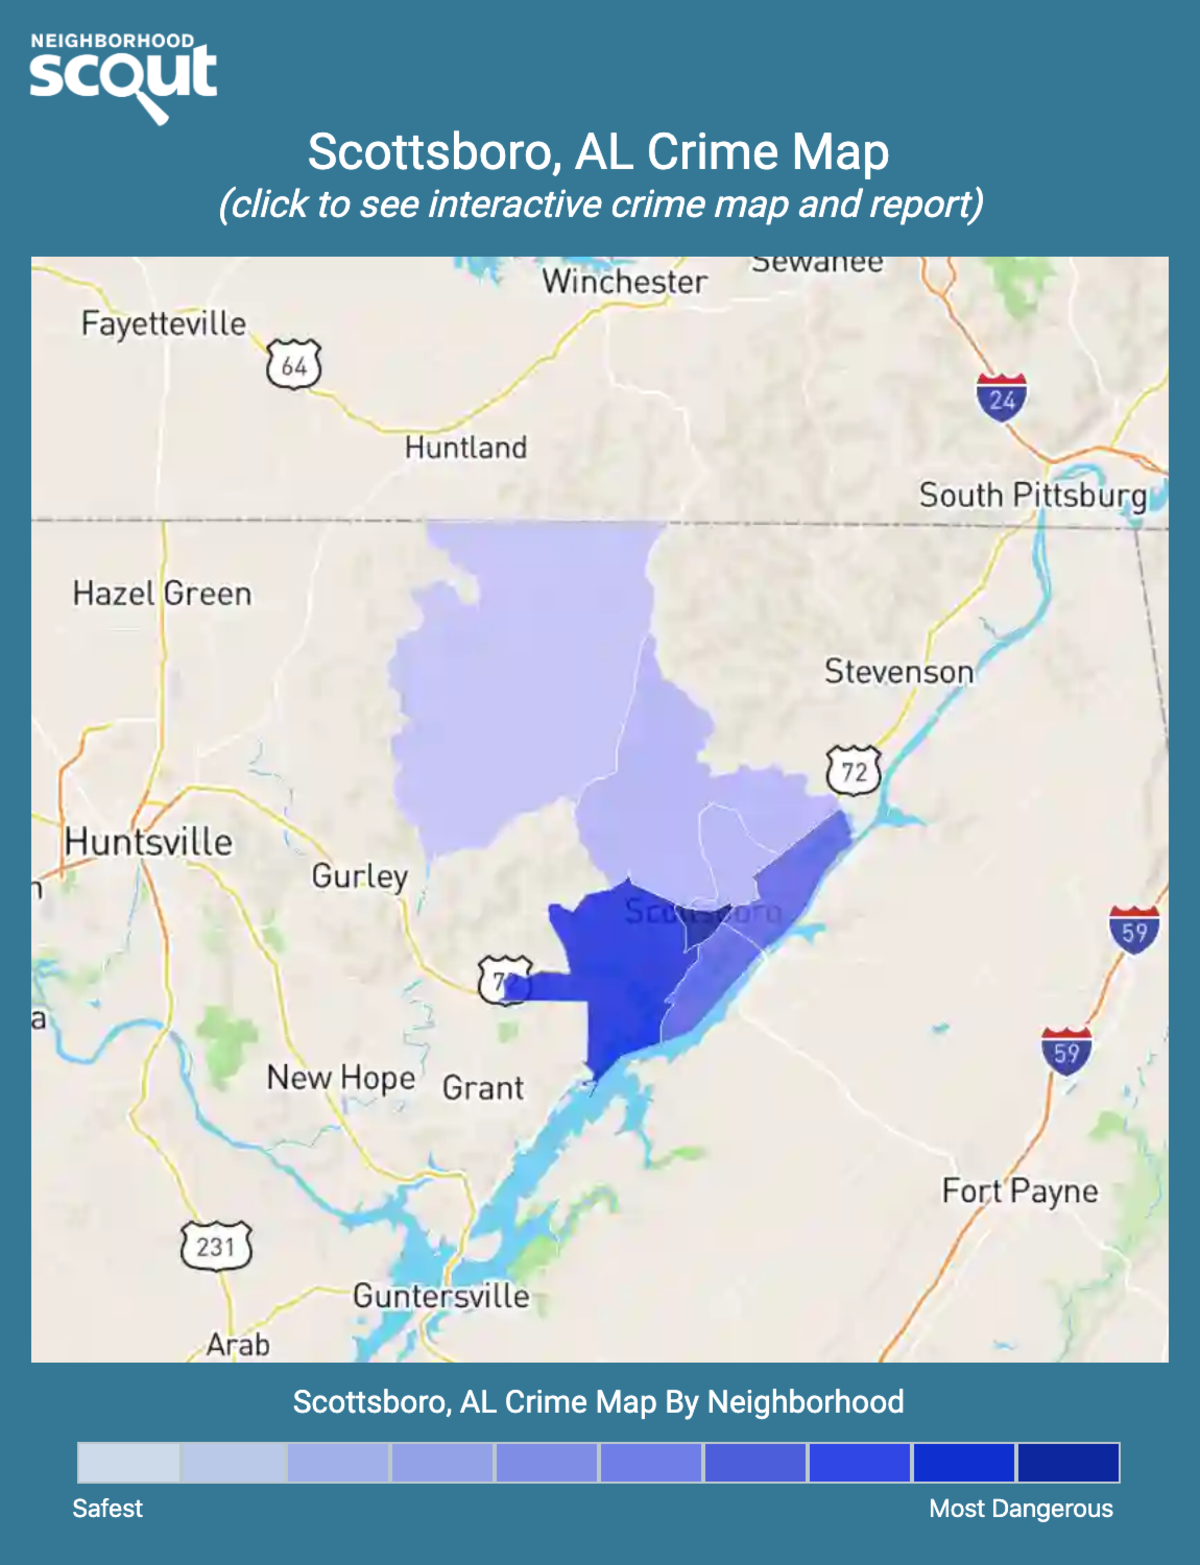 Scottsboro, Alabama crime map